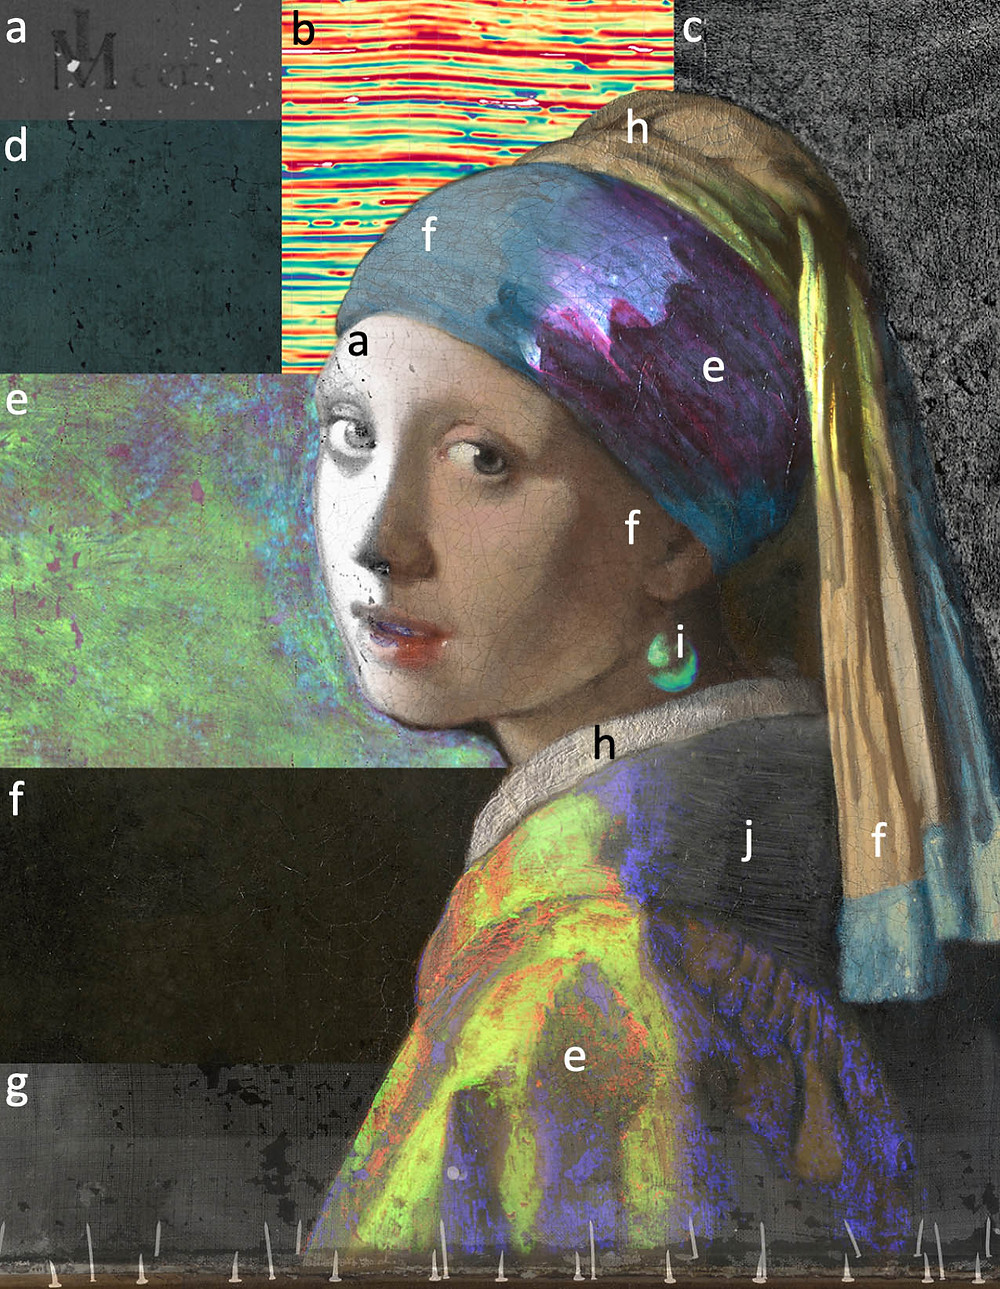 Composite image of Girl with a Pearl Earring from images made during the Girl in the Spotlight project using a number of different imaging techniques